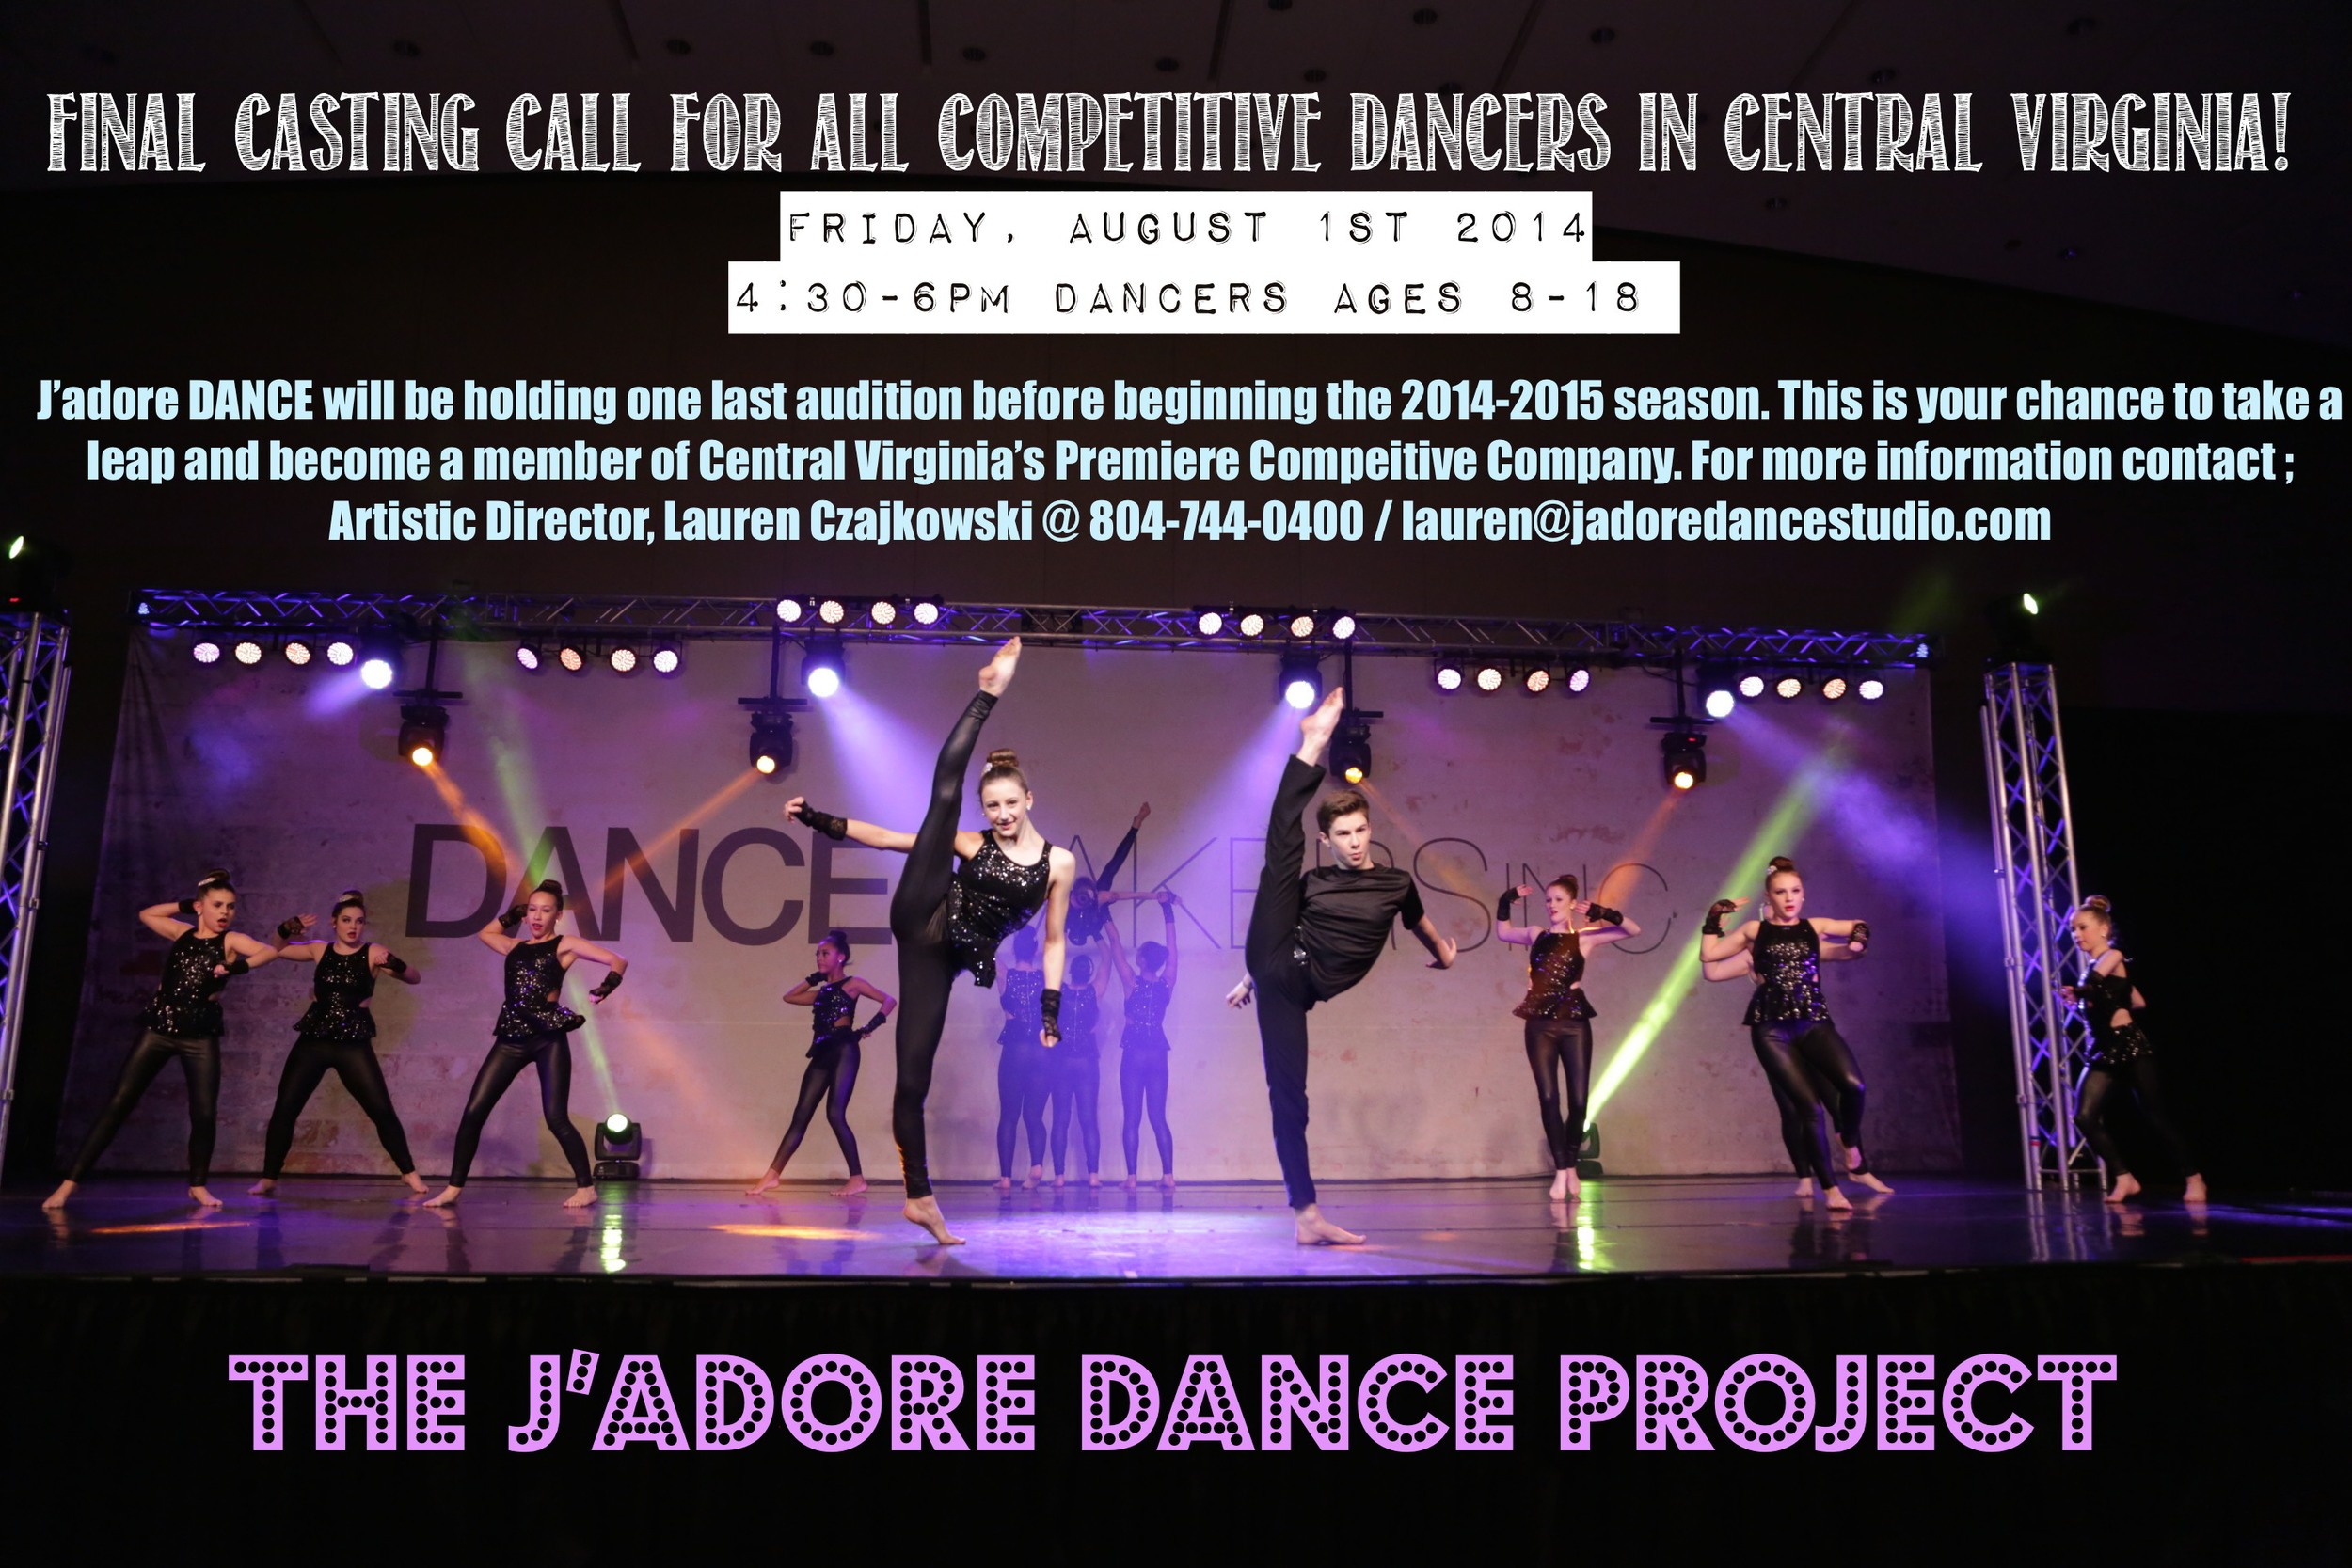 AUDITION OPPORTUNITY!!! Dancers ages 8-18